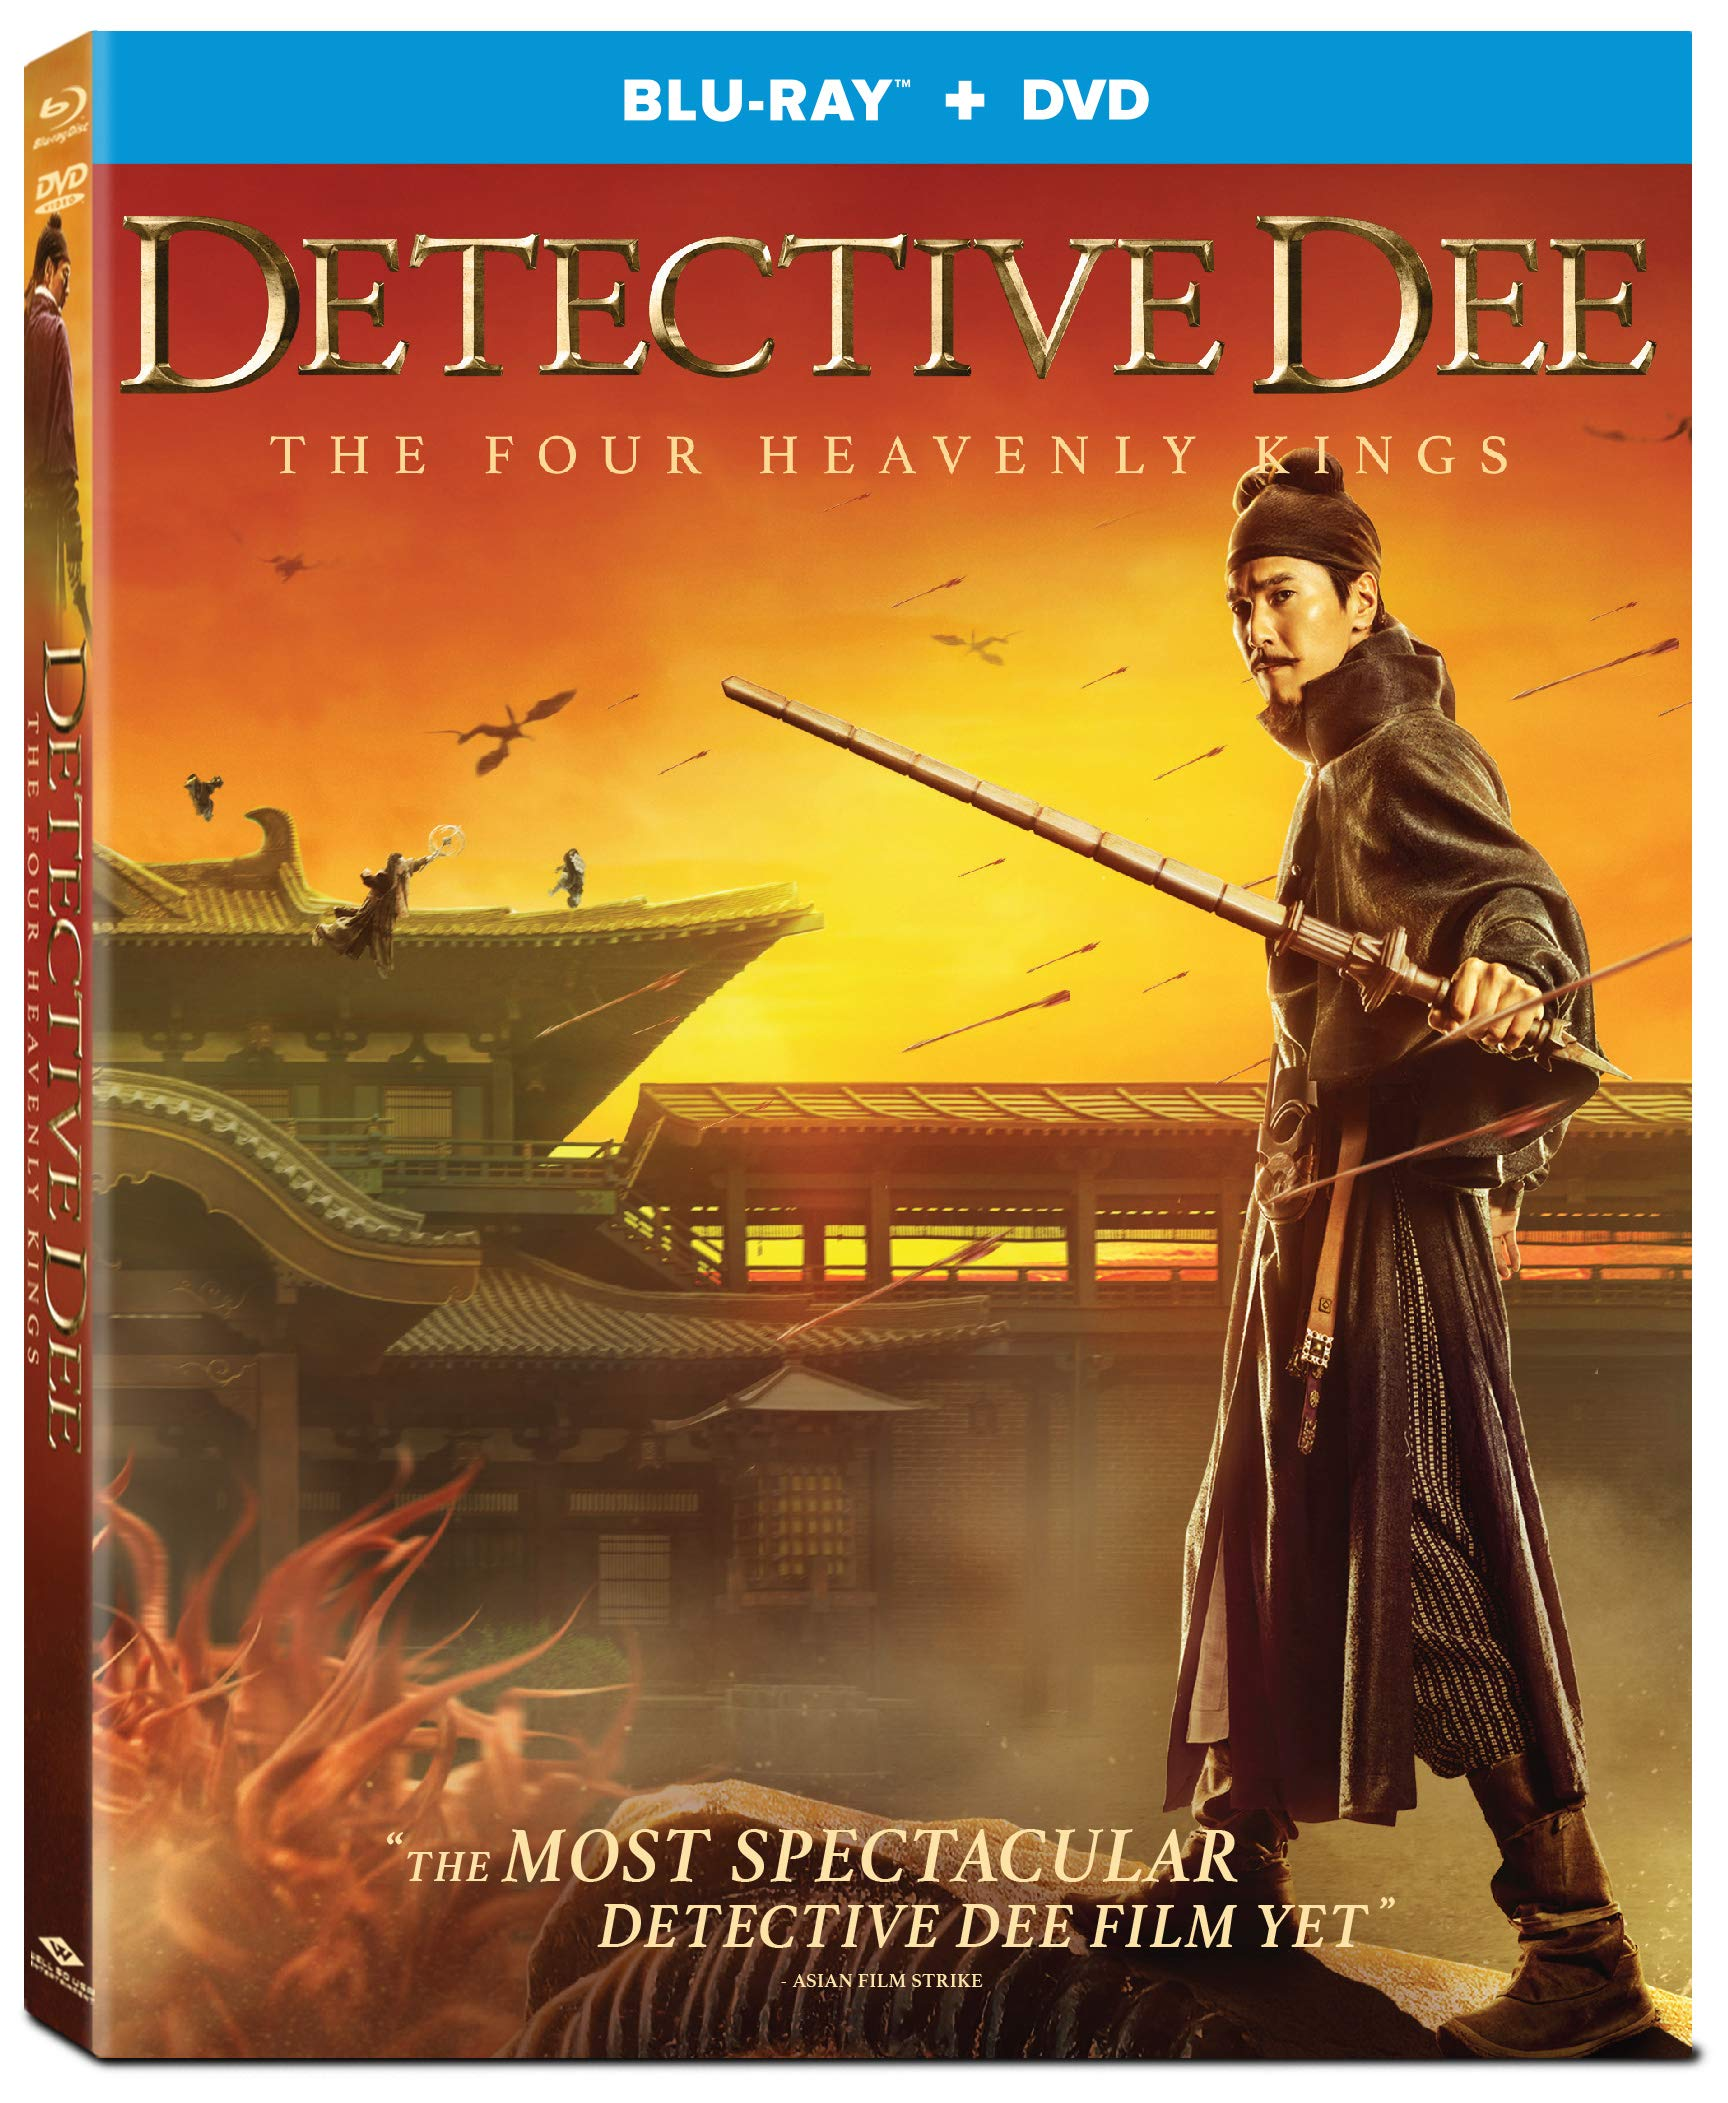 Blu-ray : Detective Dee: The Four Heavenly Kings (2 Pack)